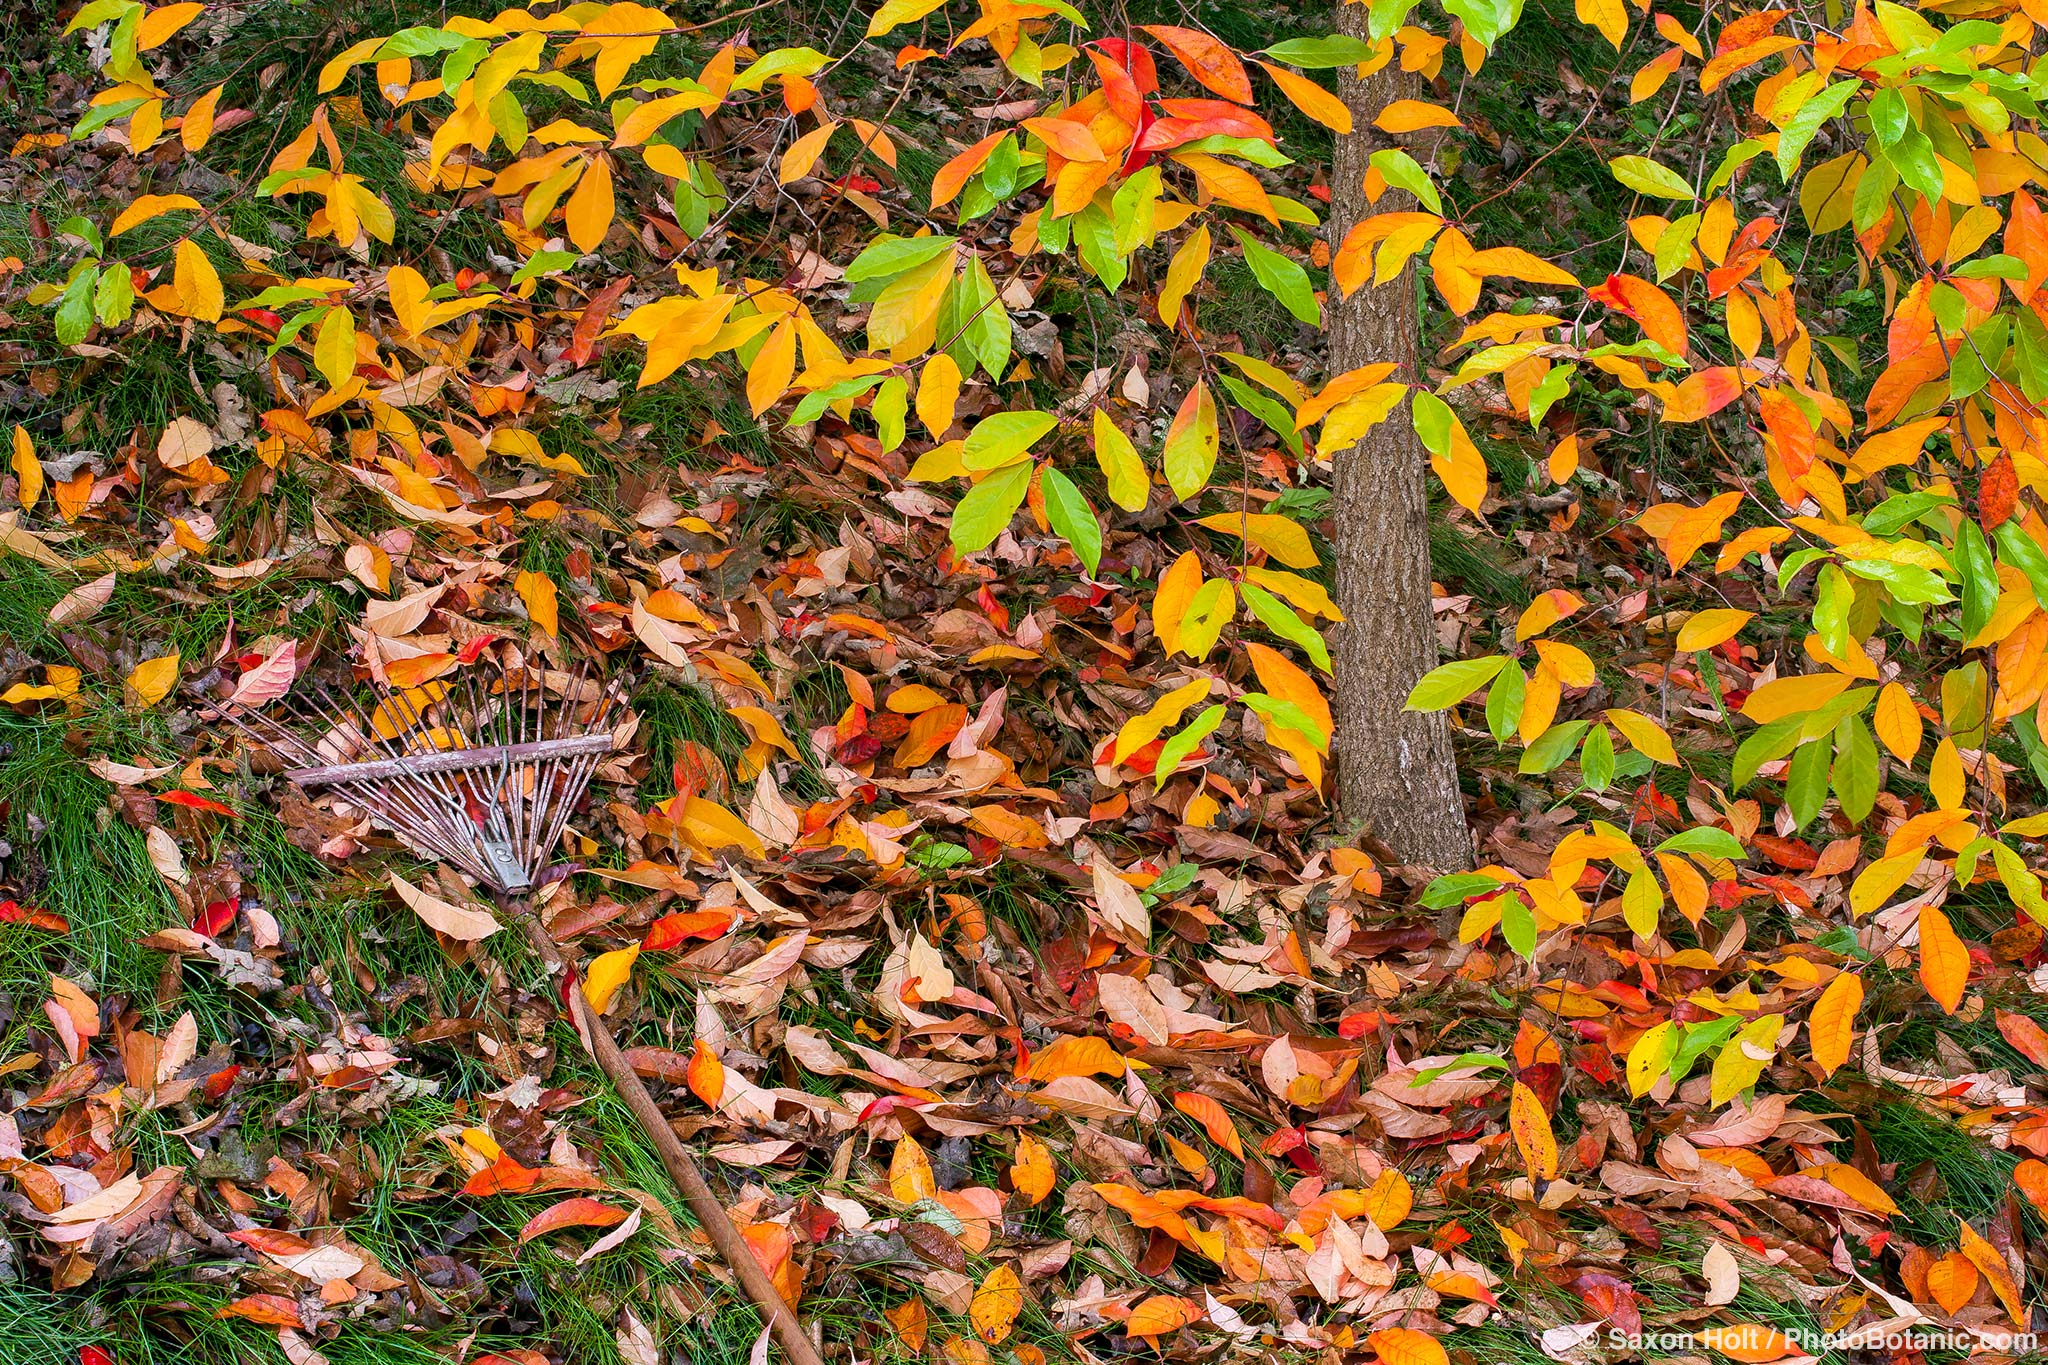 Rake in the fall leaf foliage, tupelo tree (Nyssa sylvatica) in California garden